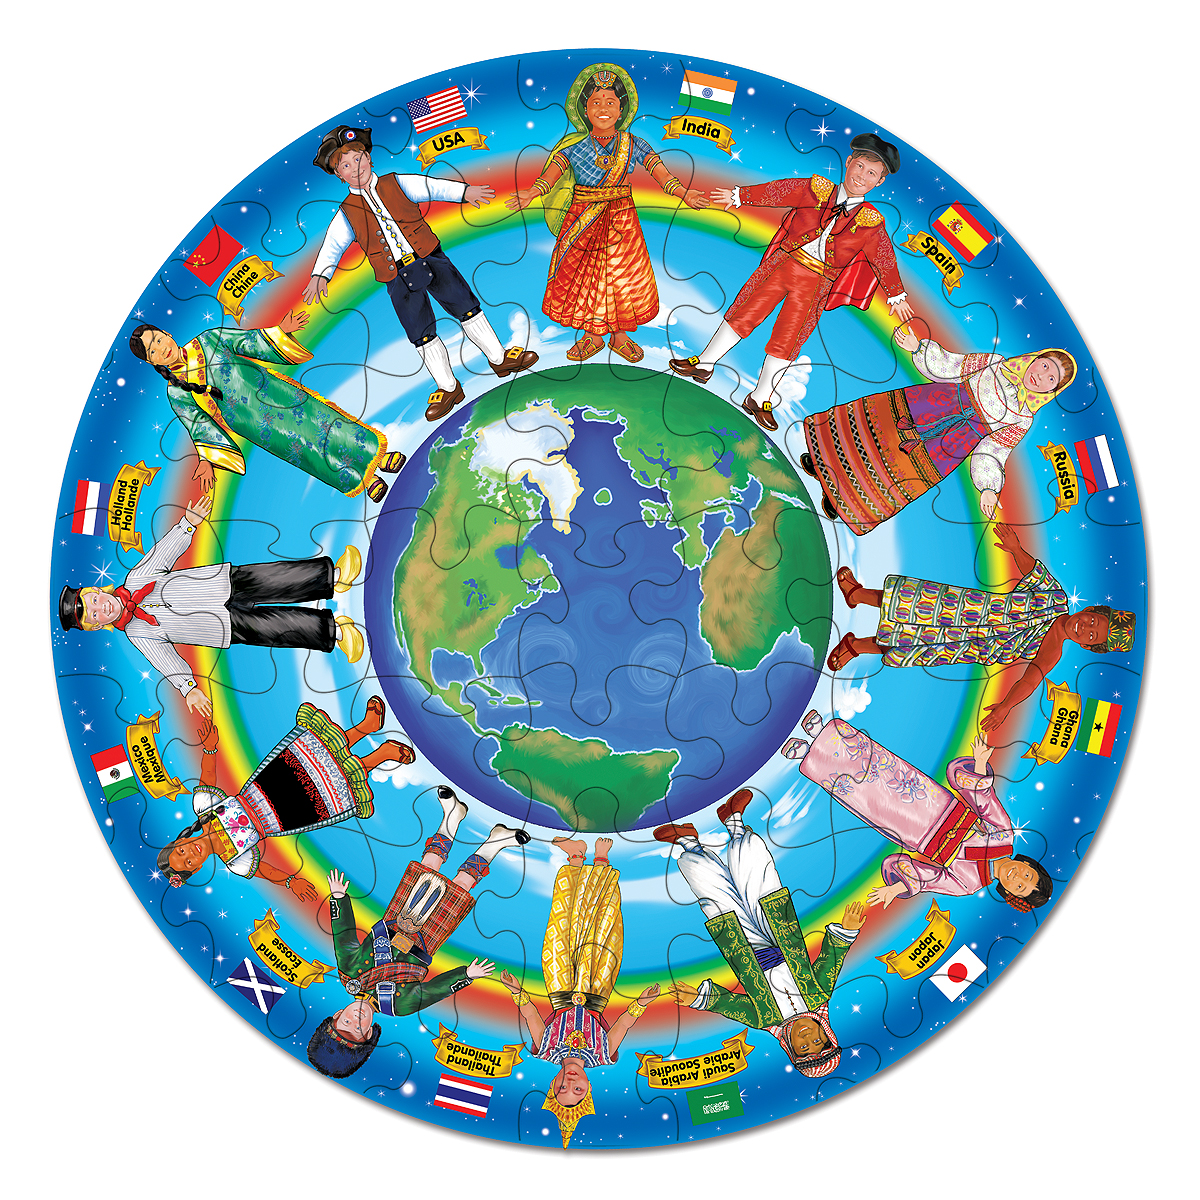 cultural diversity and globalization Introduction the discourse regarding the effects of globalization on cultural diversity is a challenging debate the advancement of technology dissolves international boundaries and opens cultures to a whole new arena (smith, 2000), enabling globalization to occur.